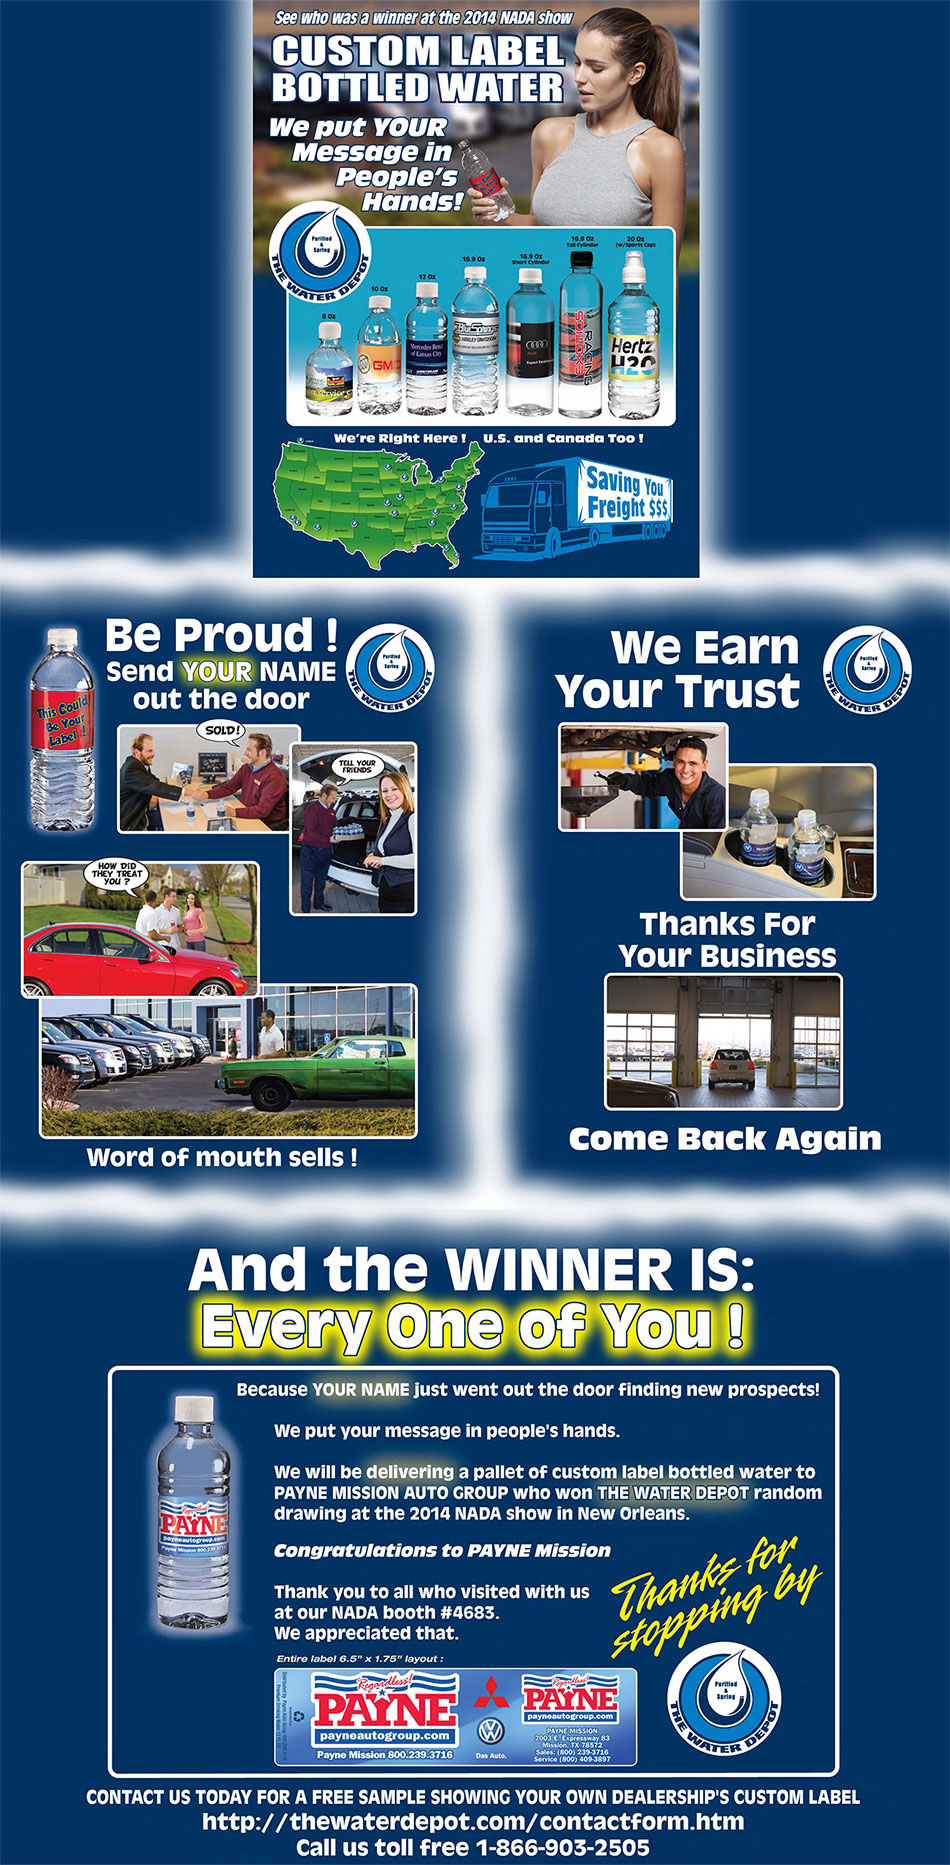 Promotional Events - 2014 NADA Show